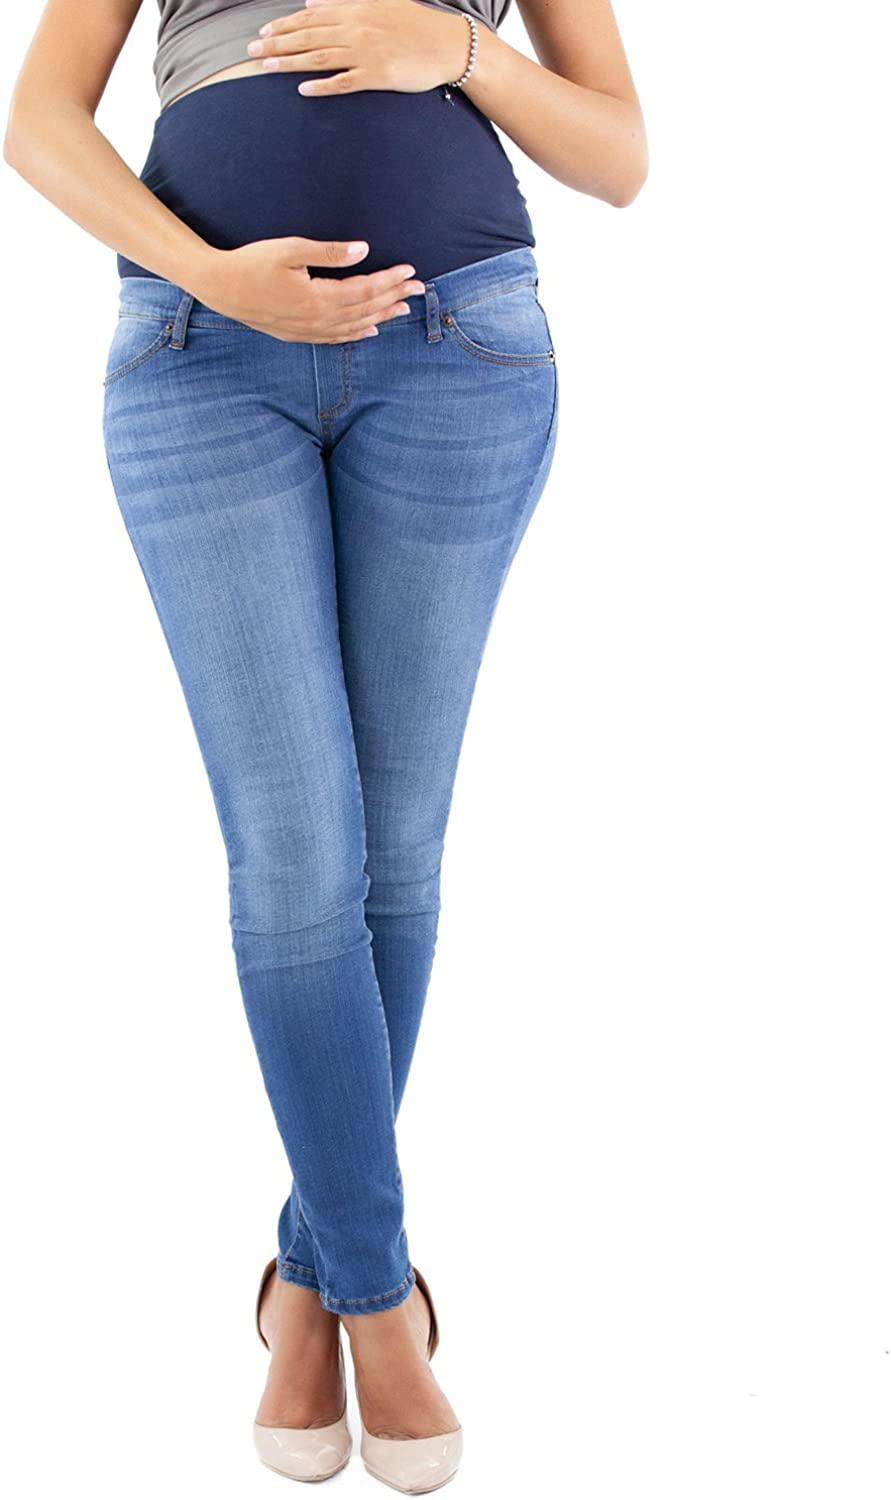 Milano Deluxe Power Stretch Fabric for Great Comfort During Pregnancy and Beyond- Made in Italy Maternity Jeggings Deluxe Wash Skinny Fit